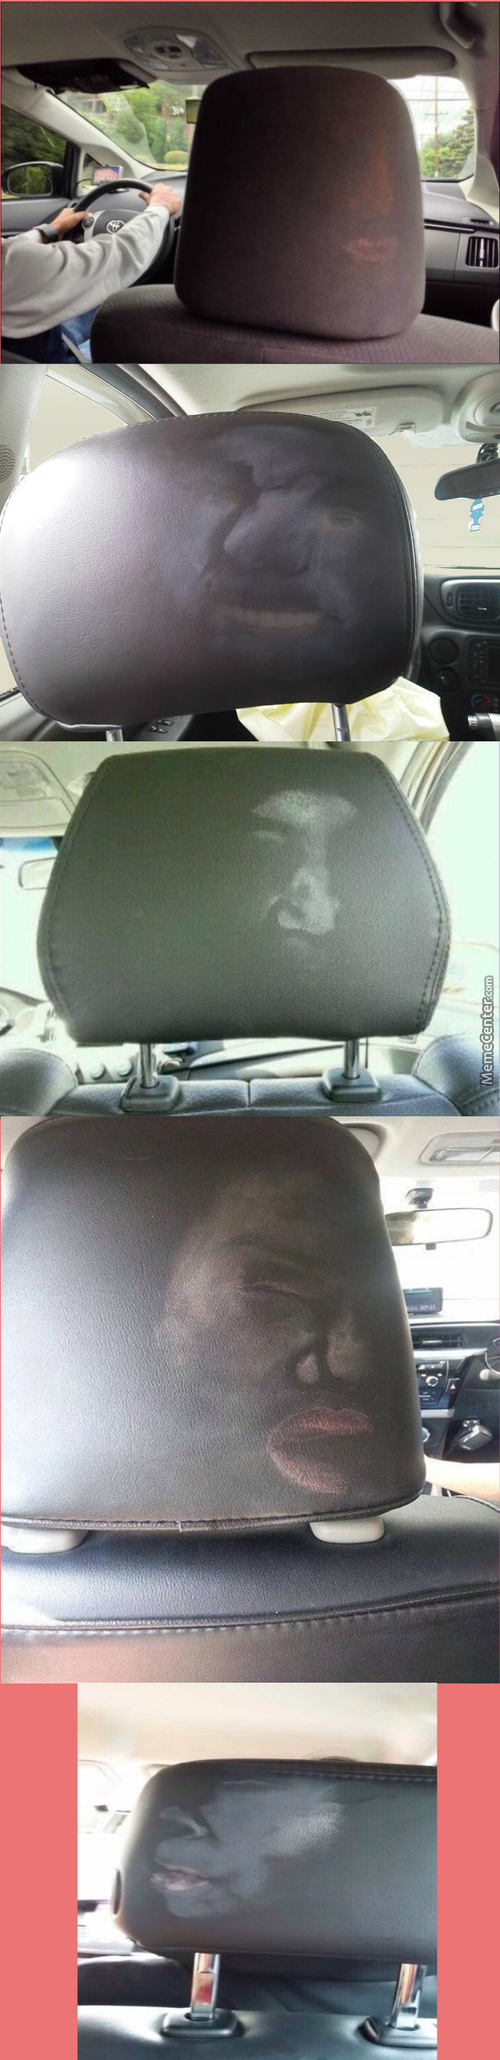 Consequences For Not Wearing A Seatbelt (Ladies In The Back Seat)